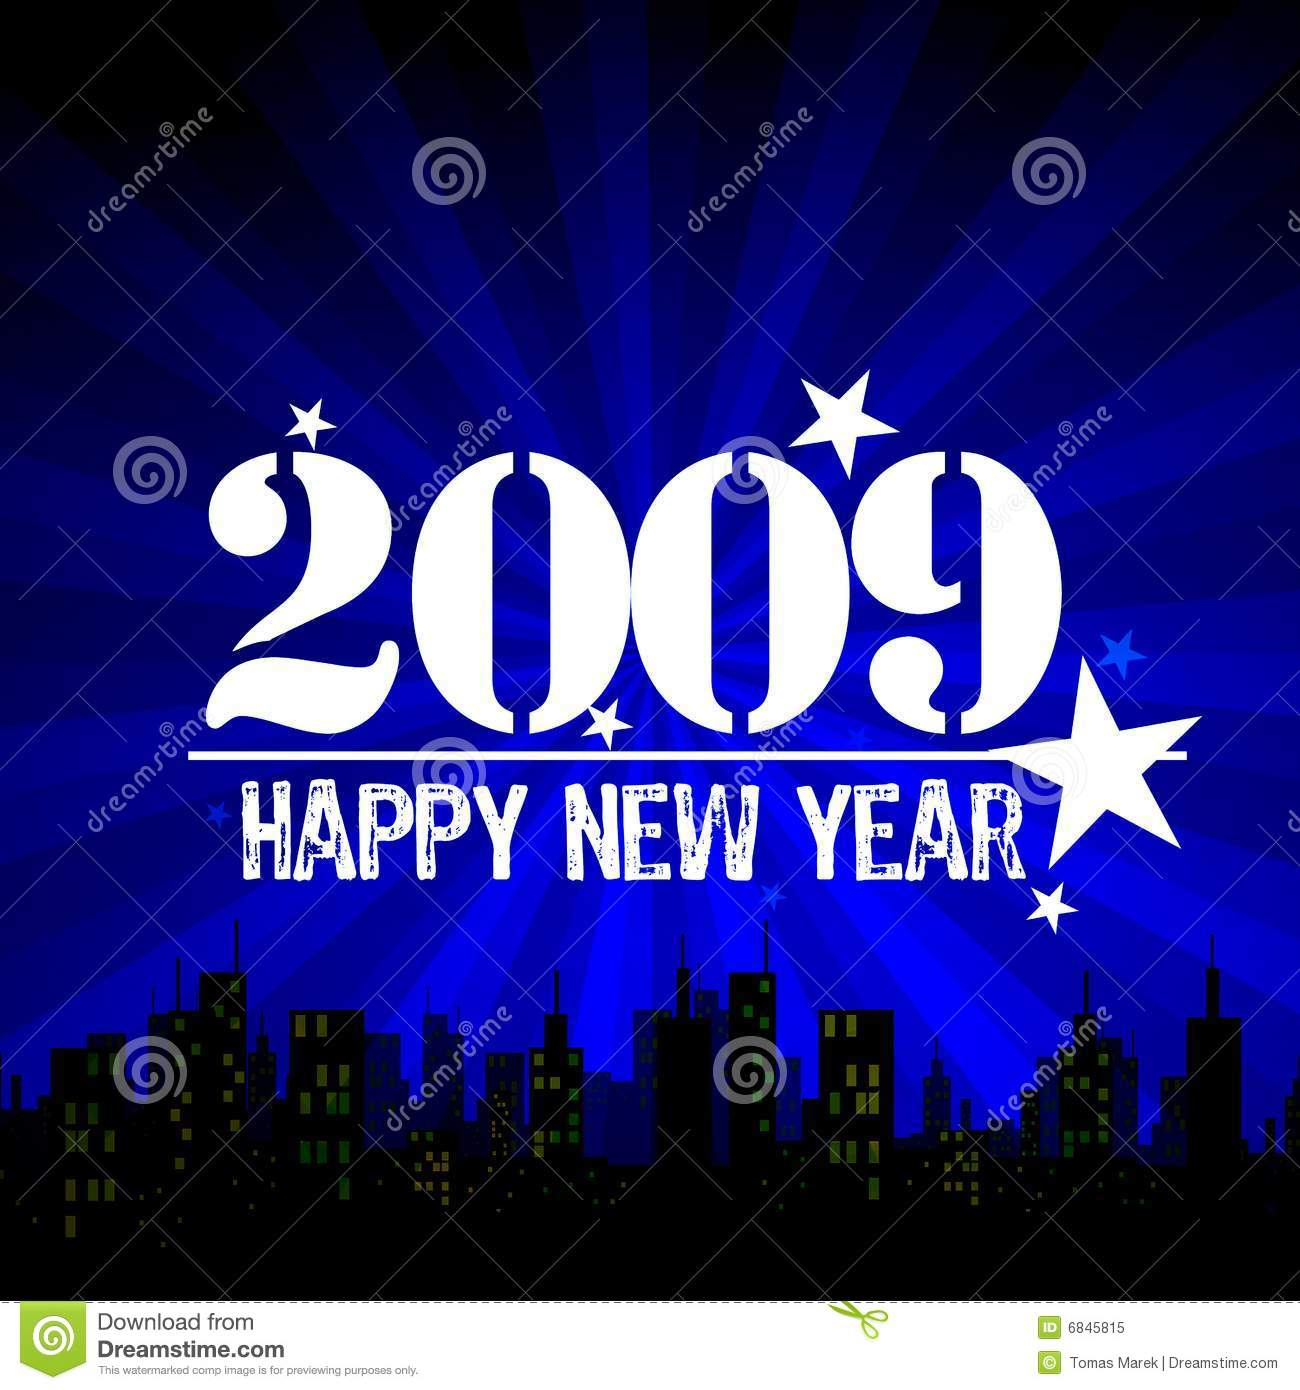 2009: Royalty Free Stock Photo: Happy New Year 2009. Image: 6845815